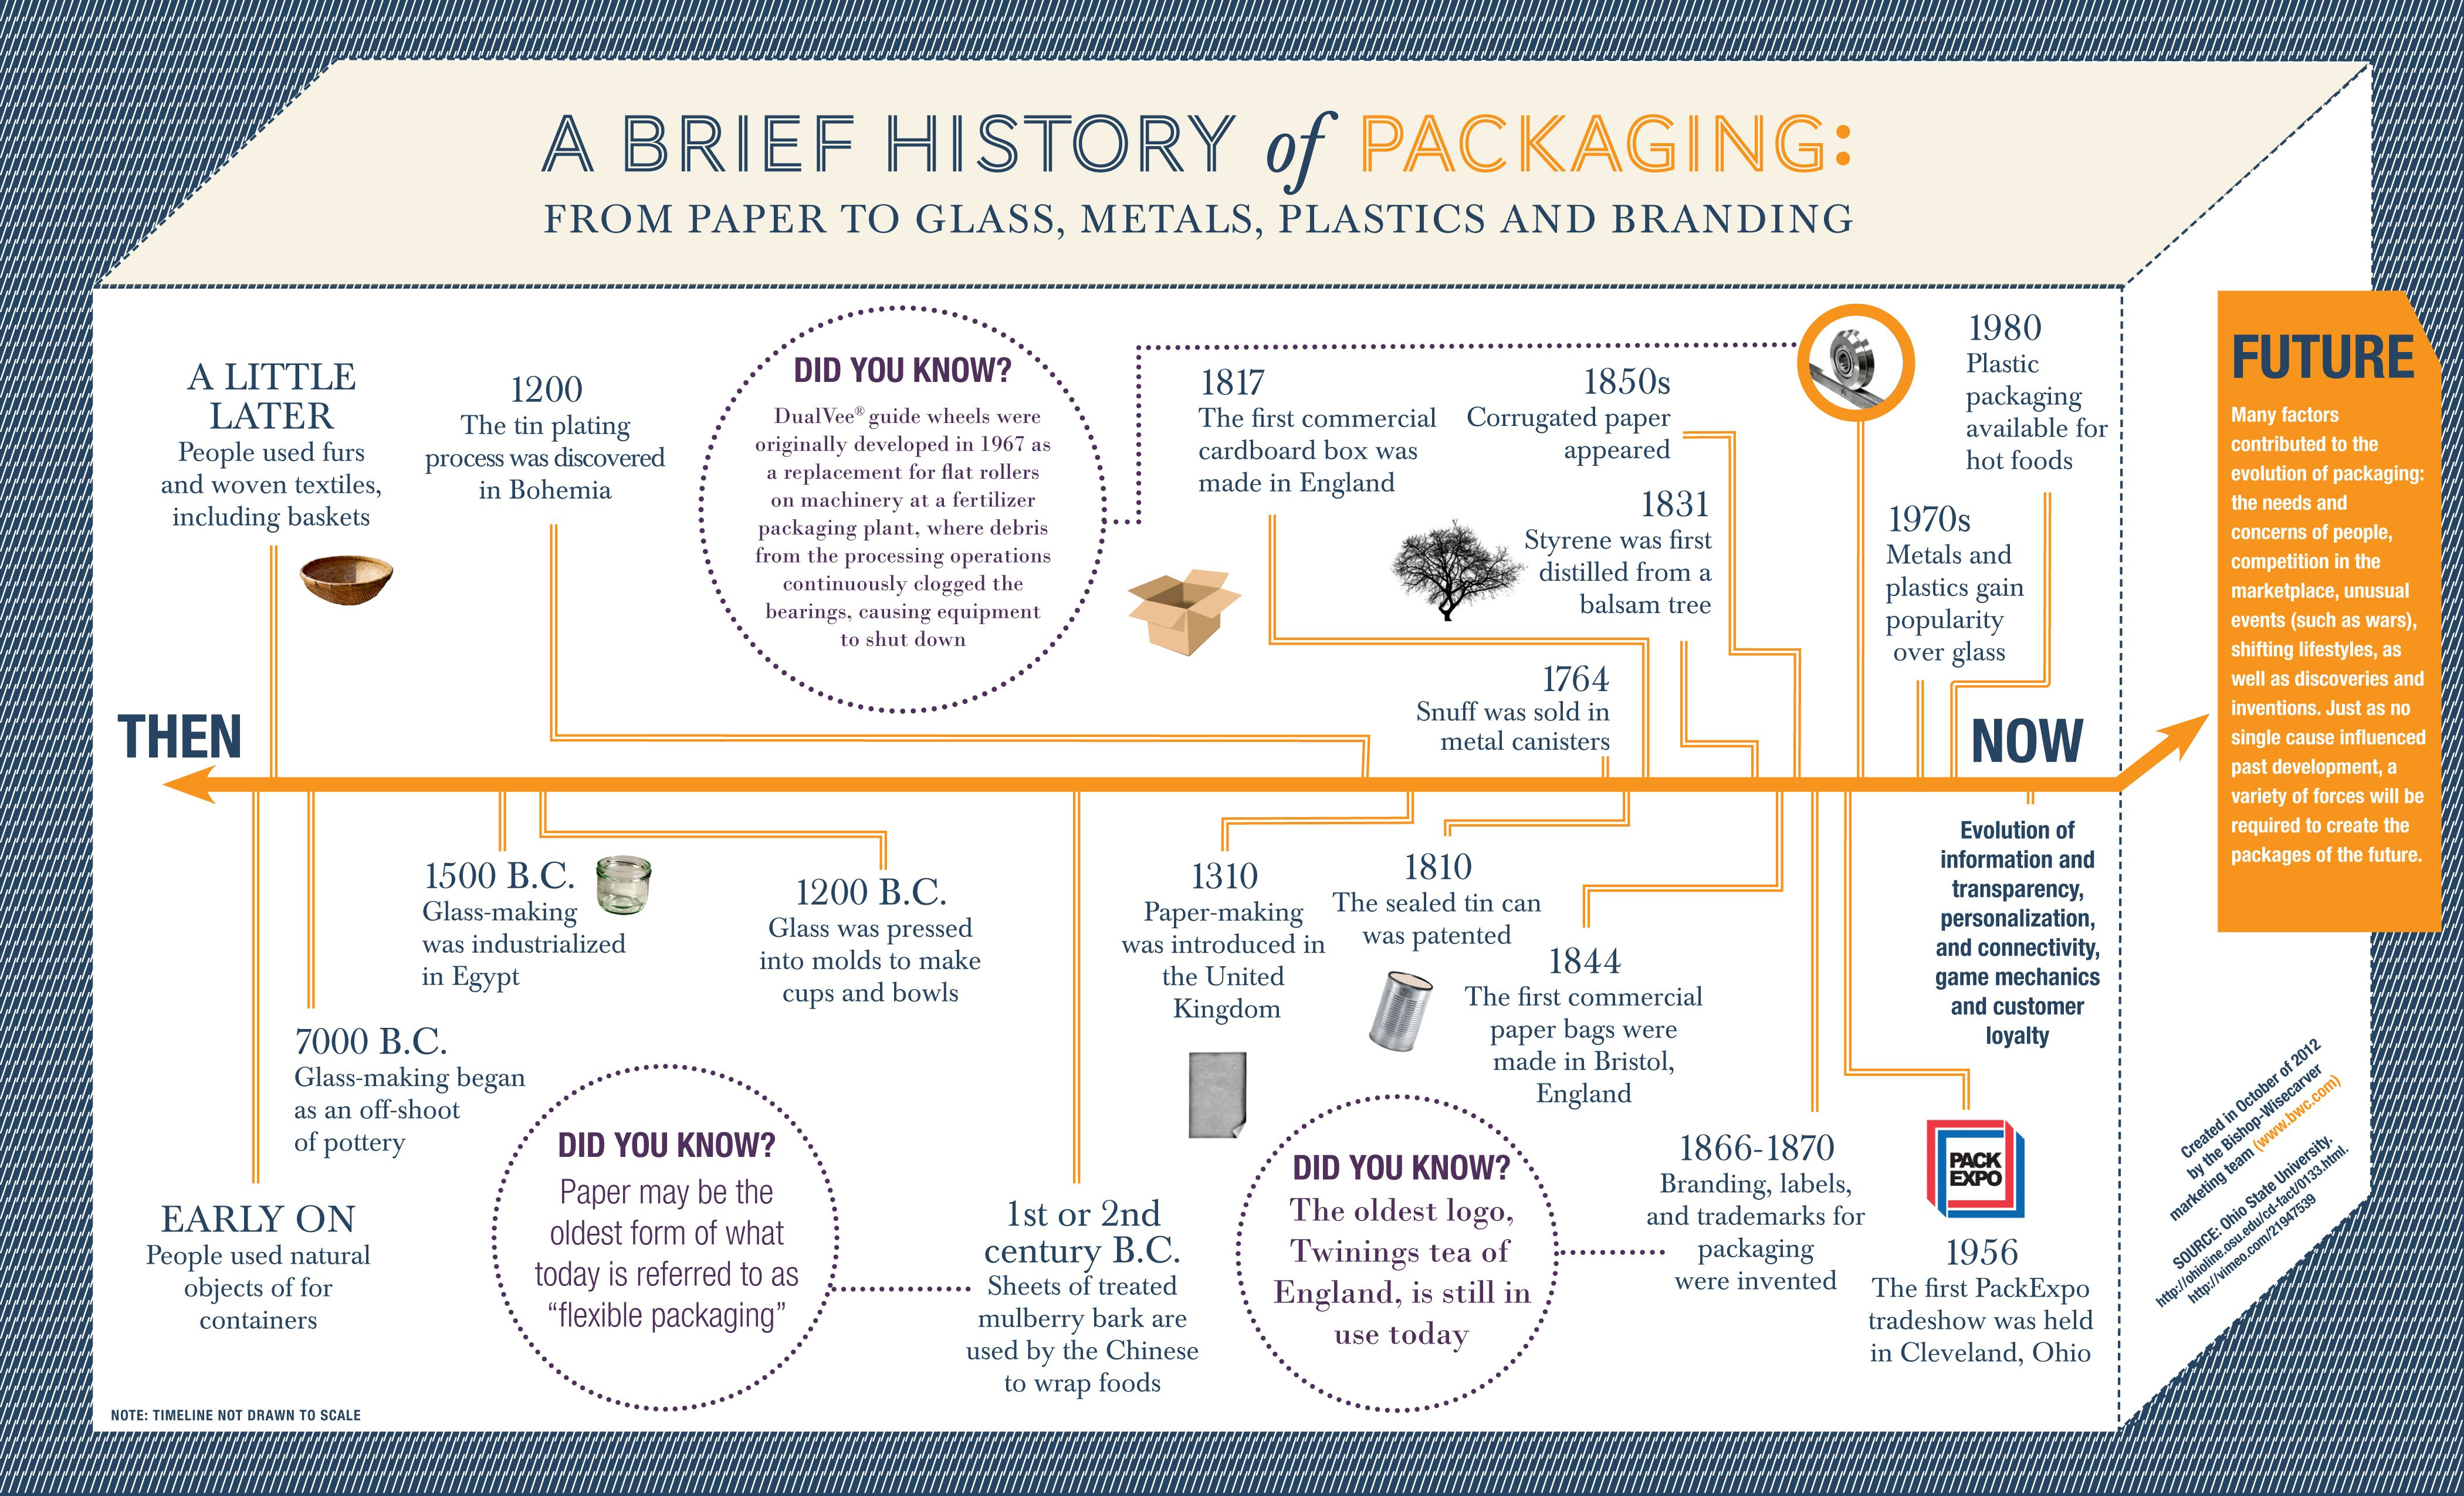 A Brief History of Packaging in celebration of Pack Expo by the BWC ...